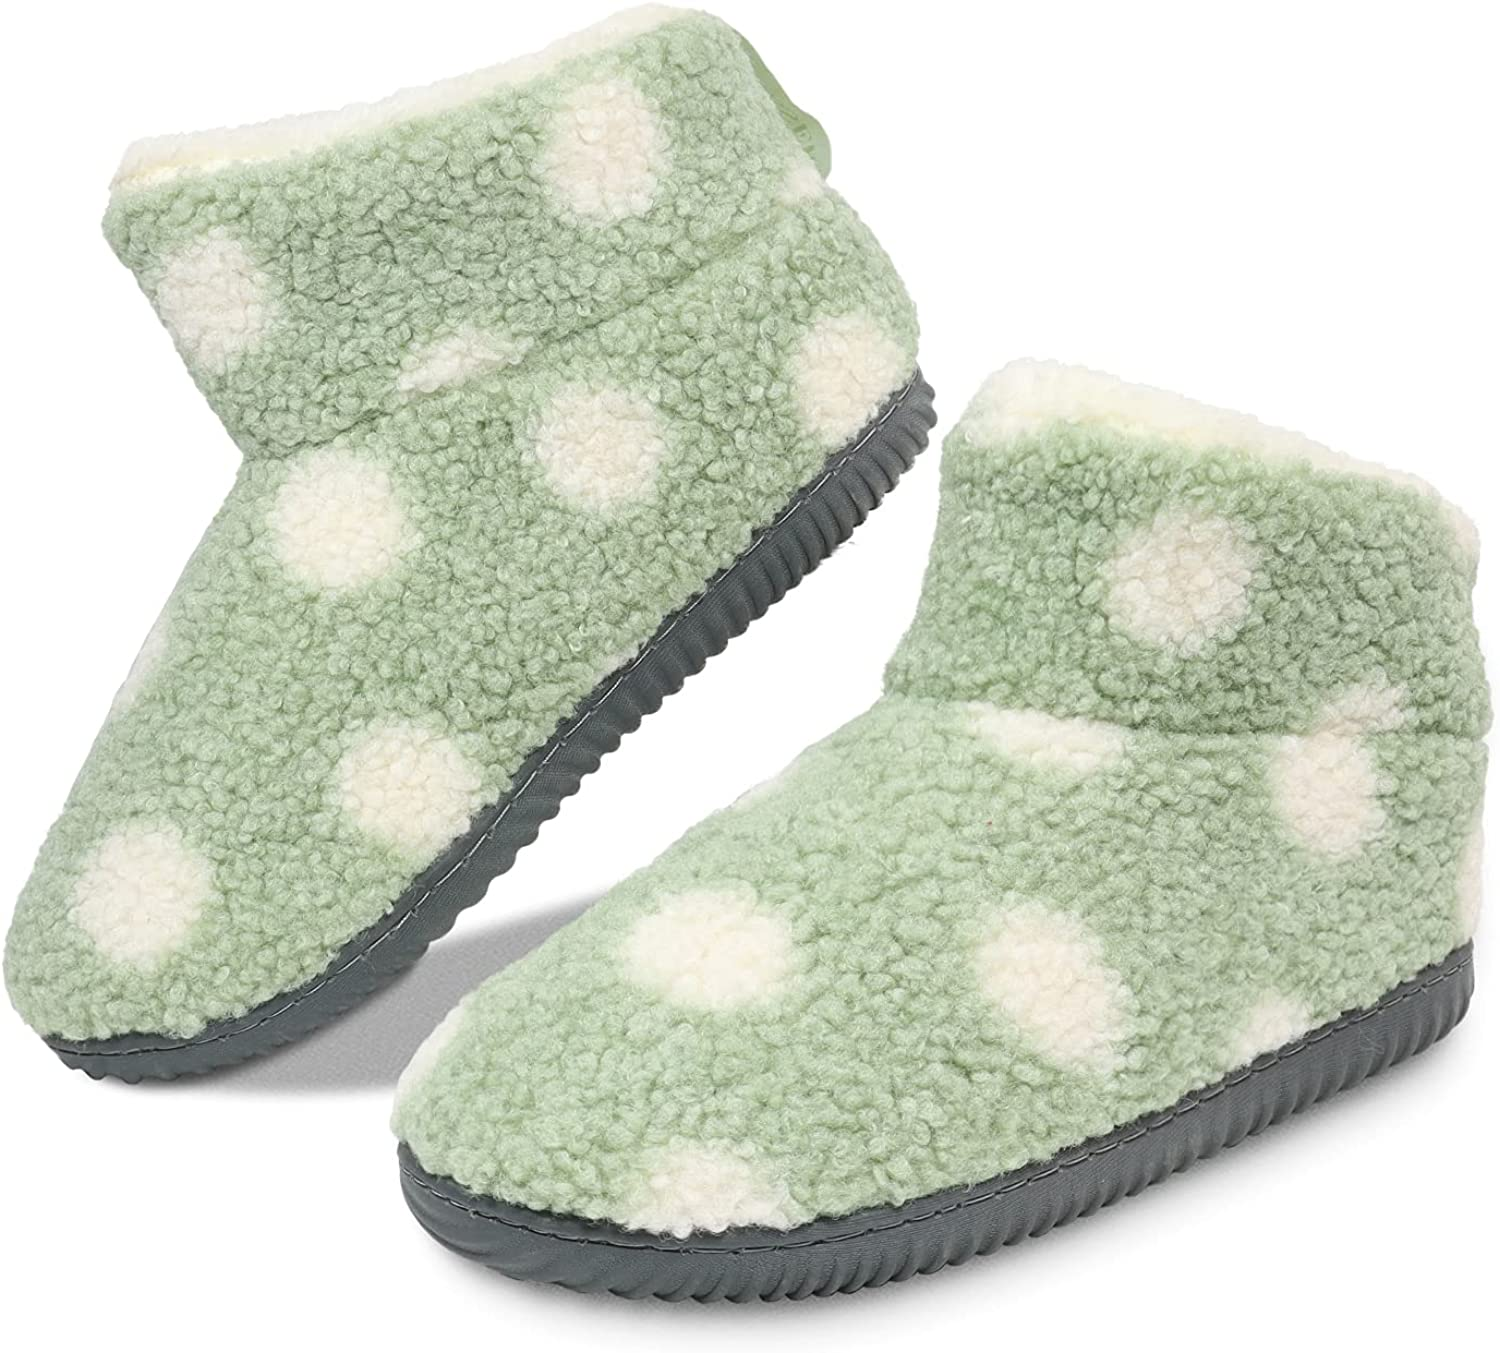 GUMUSSERVI Bootie Slippers for Women with 4-Layer Memory Foam,Boot Slippers Women Indoor,Winter Slippers Boots for Women,Fuzzy Vamp Plush Lining,Closed Back Ladies House Shoes Indoor Outdoor